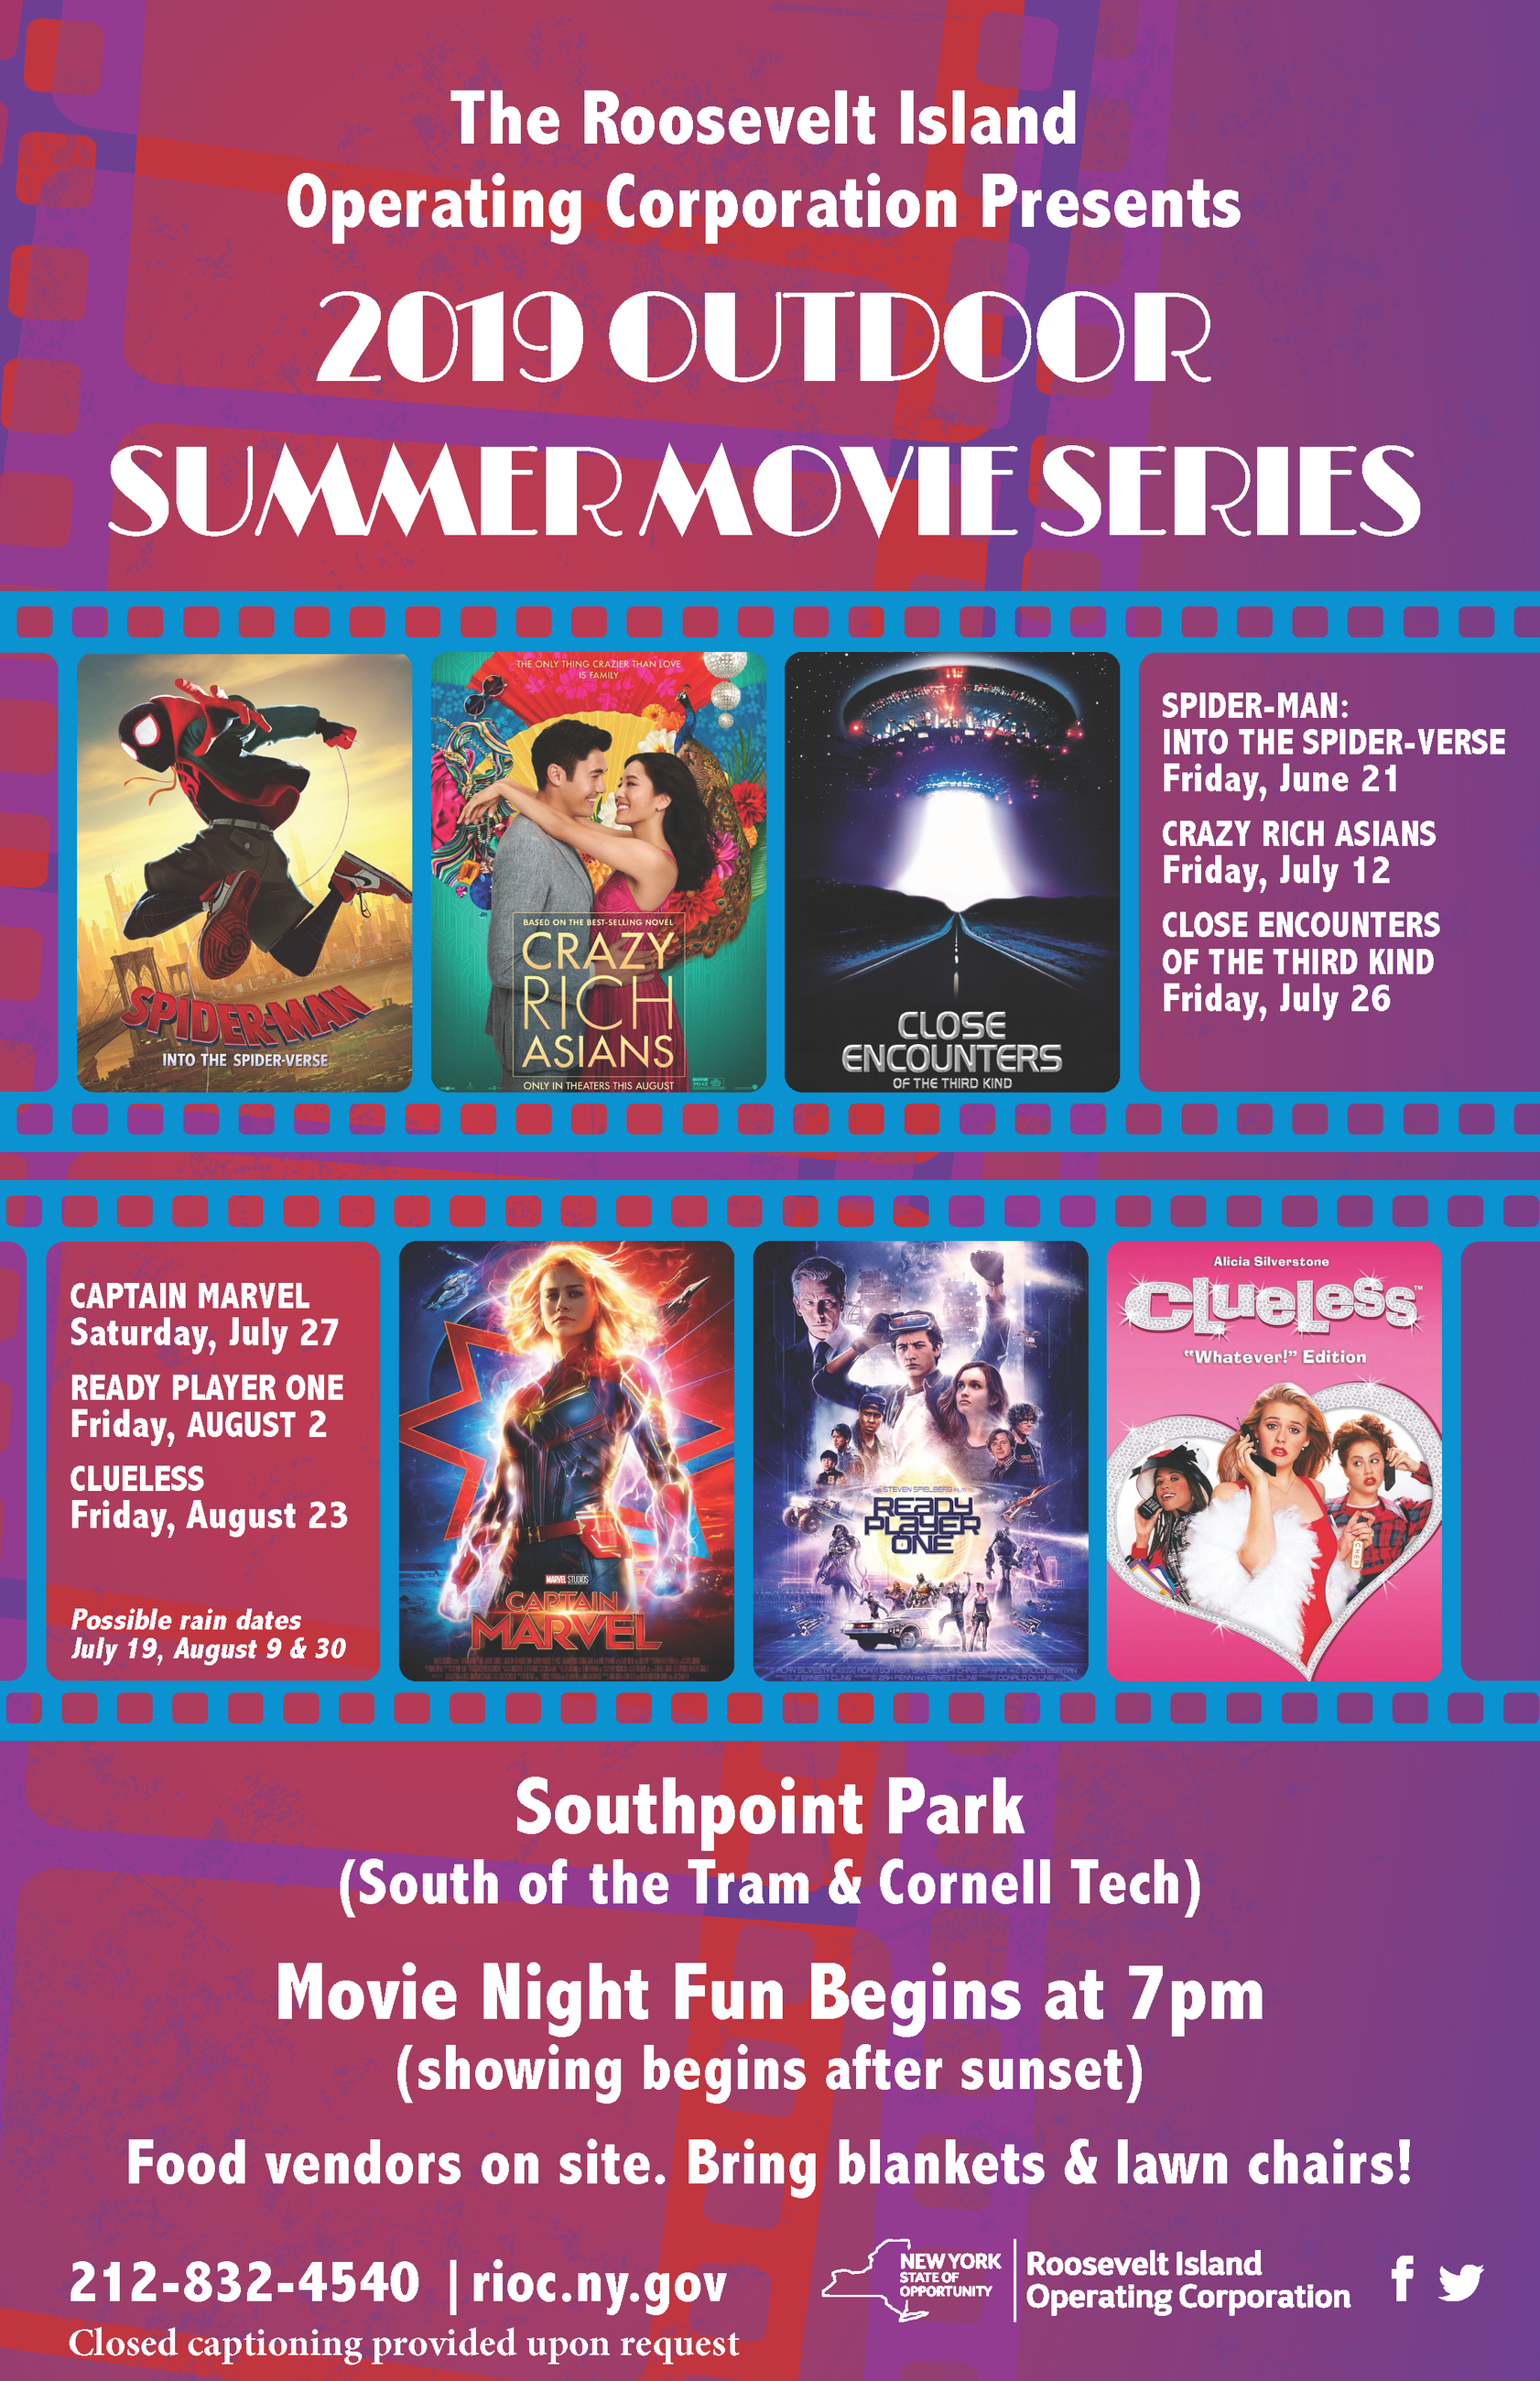 2019 Summer Movie Series Poster cc